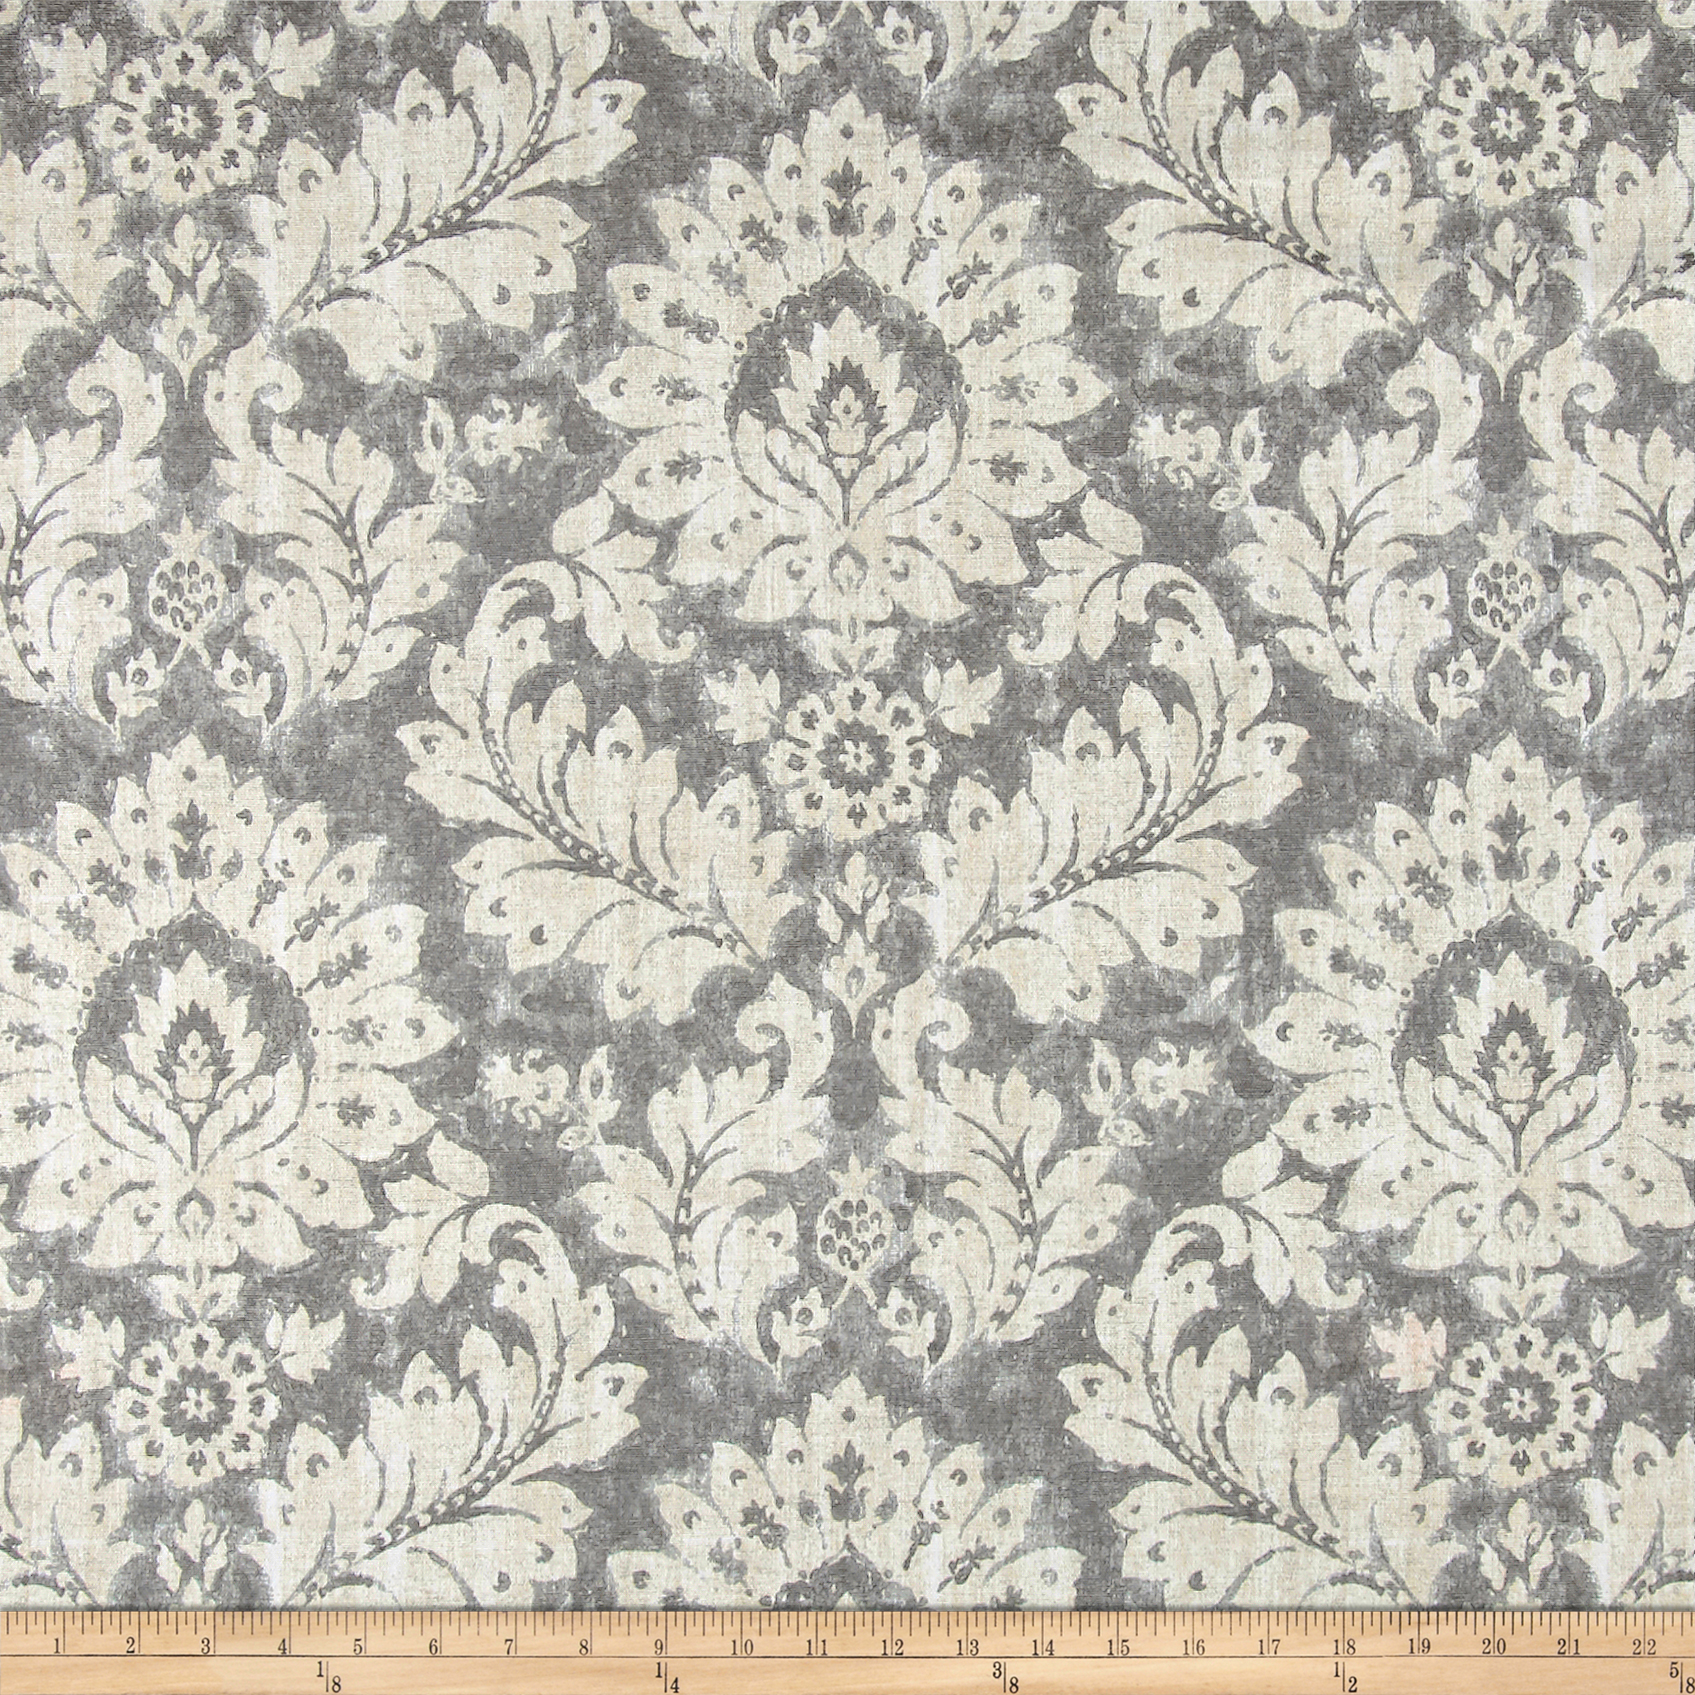 Swavelle/Mill Creek Avior Stone Fabric by Swavelle Mill Creek in USA